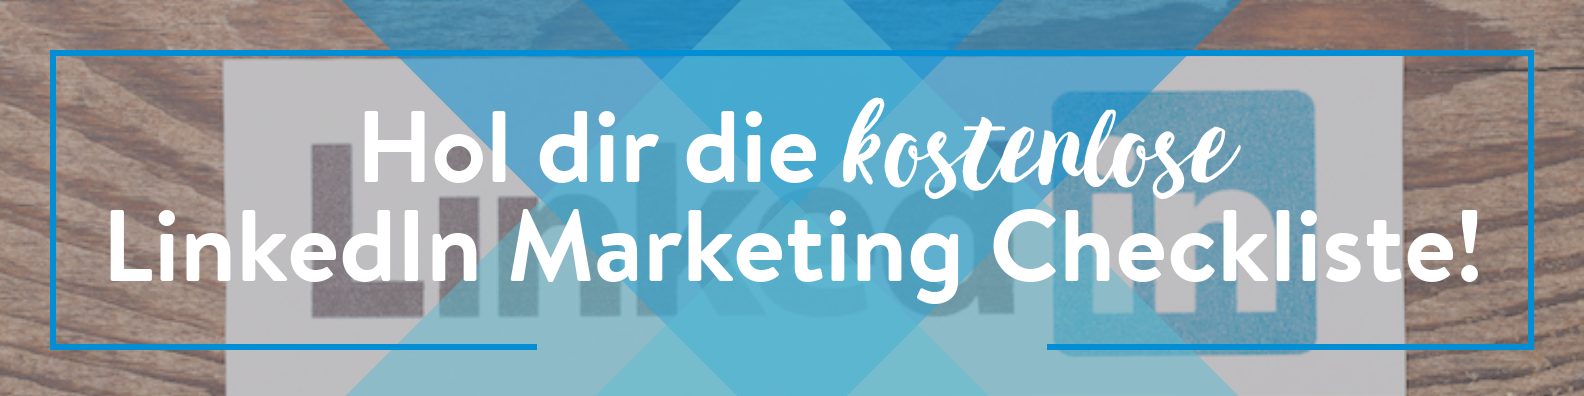 LinkedIn Marketing Checkliste